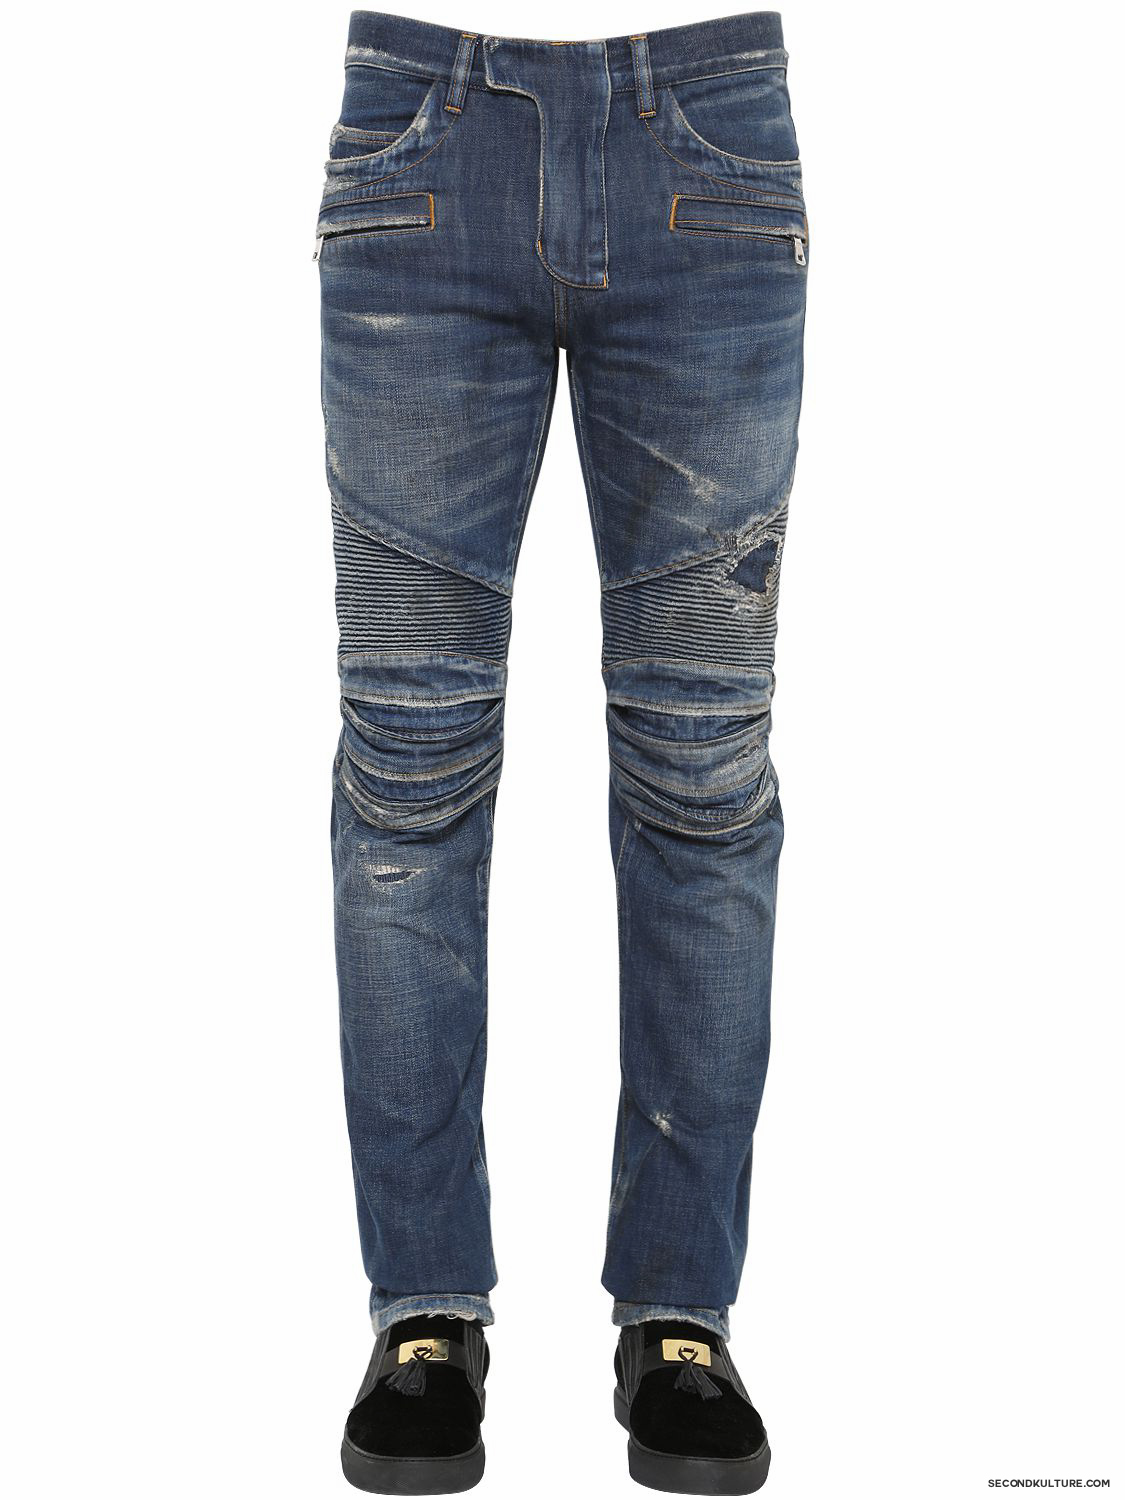 Balmain-17cm-Blue-Washed-Destroyed-Denim-Biker-Jeans-Fall-Winter-2015-1